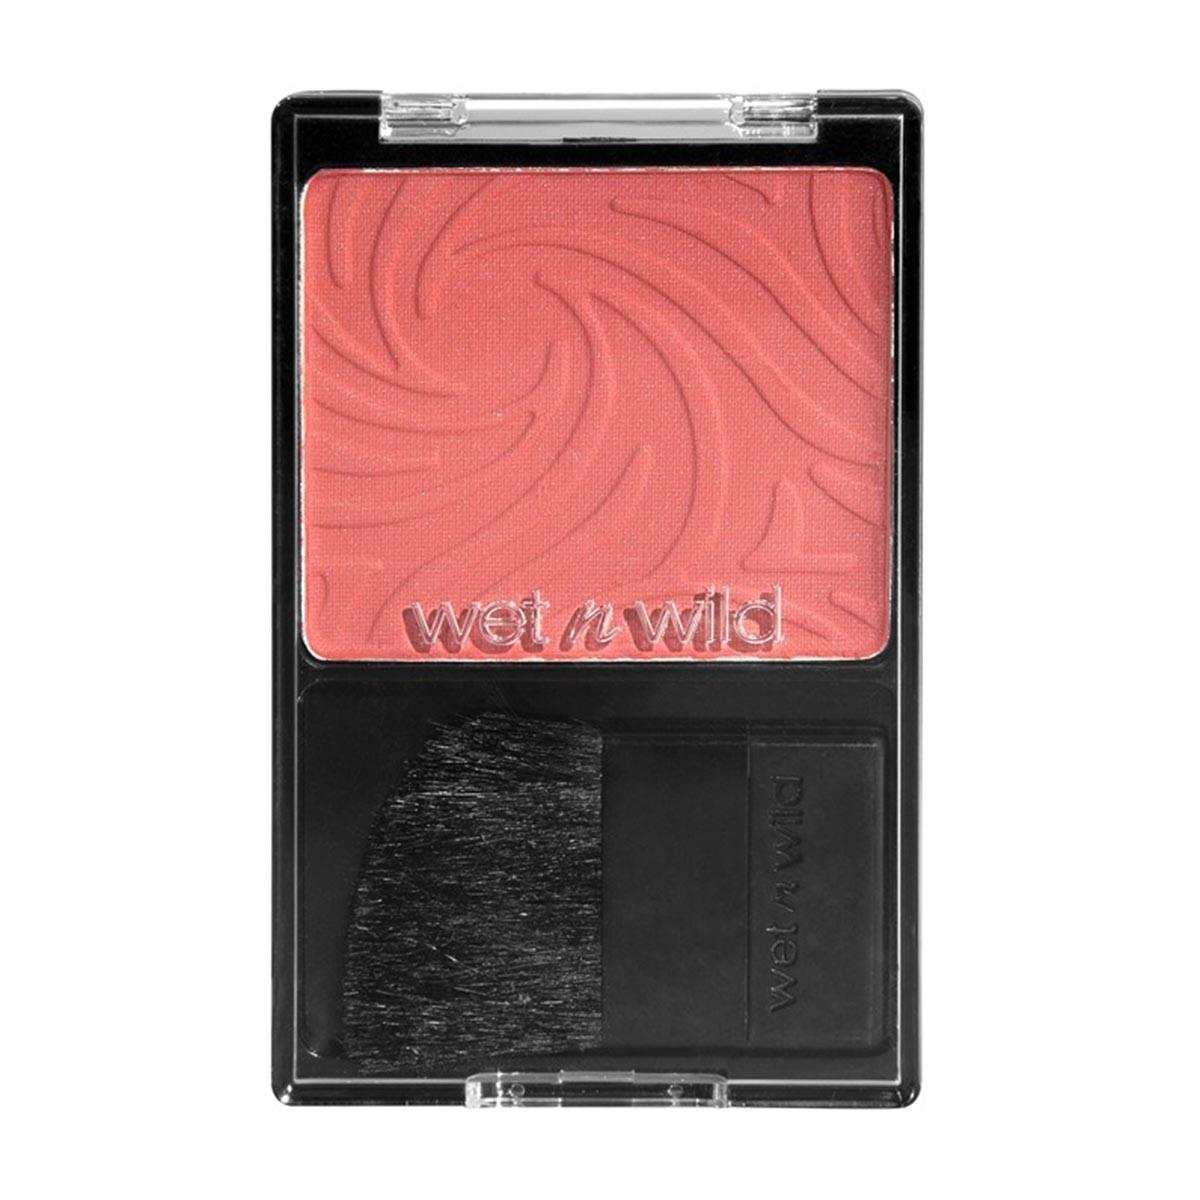 Wet n wild fragrances Coloricon Blusher Mellow Wine